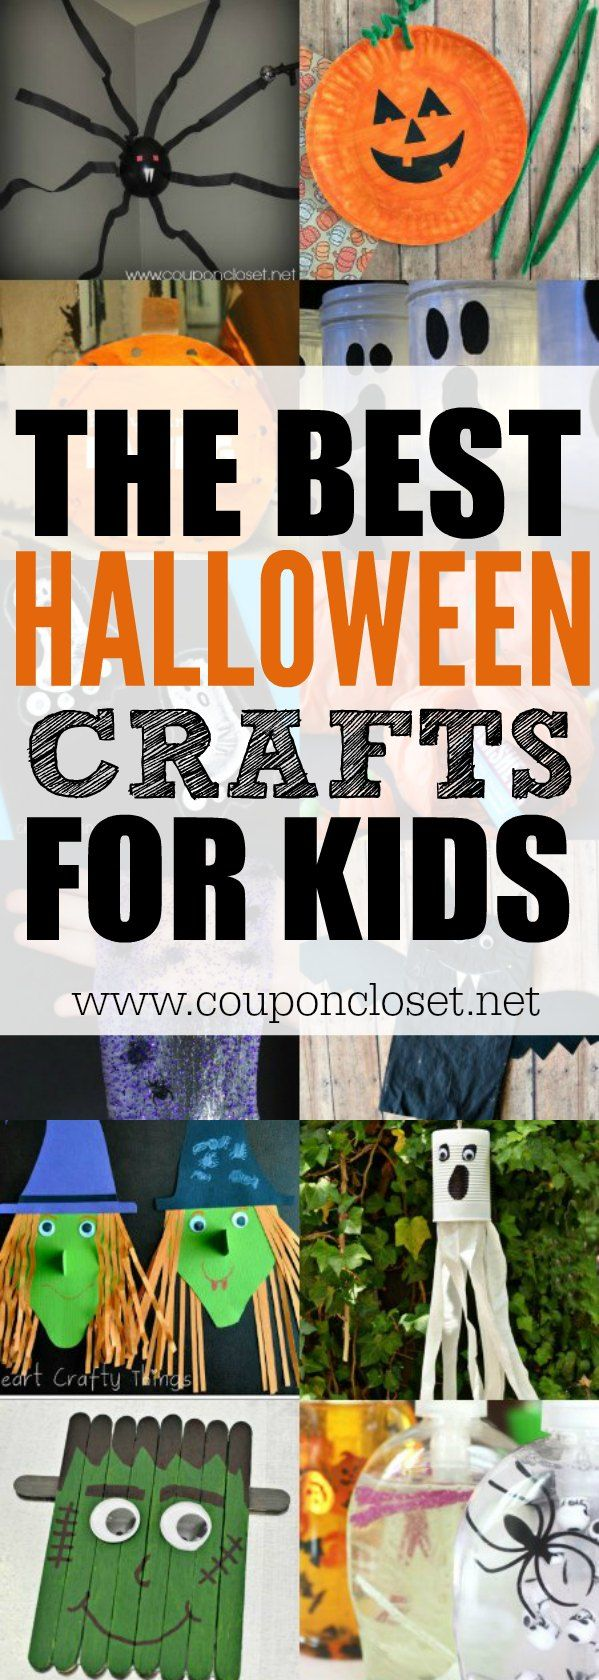 Halloween Crafts for Kids Easy Halloween Crafts for Kids